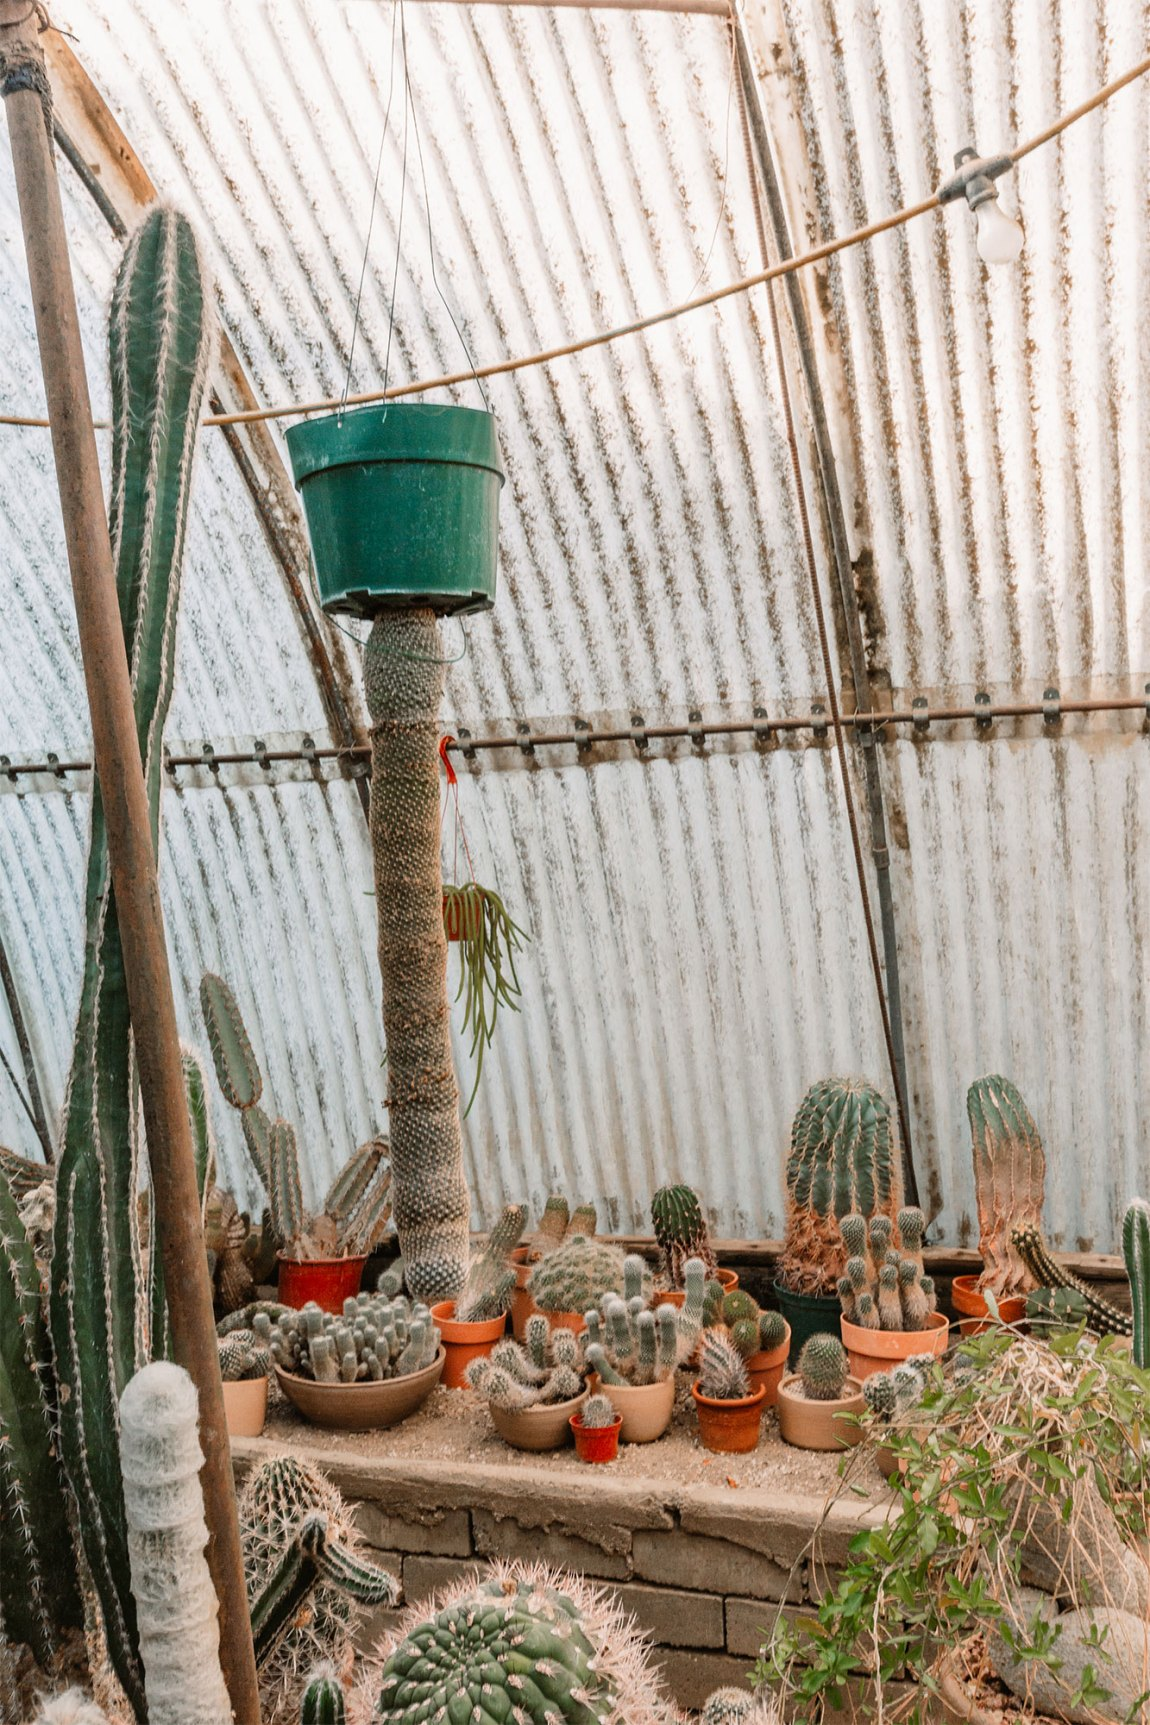 Terra cotta pots filled with a variety of green cactus plants